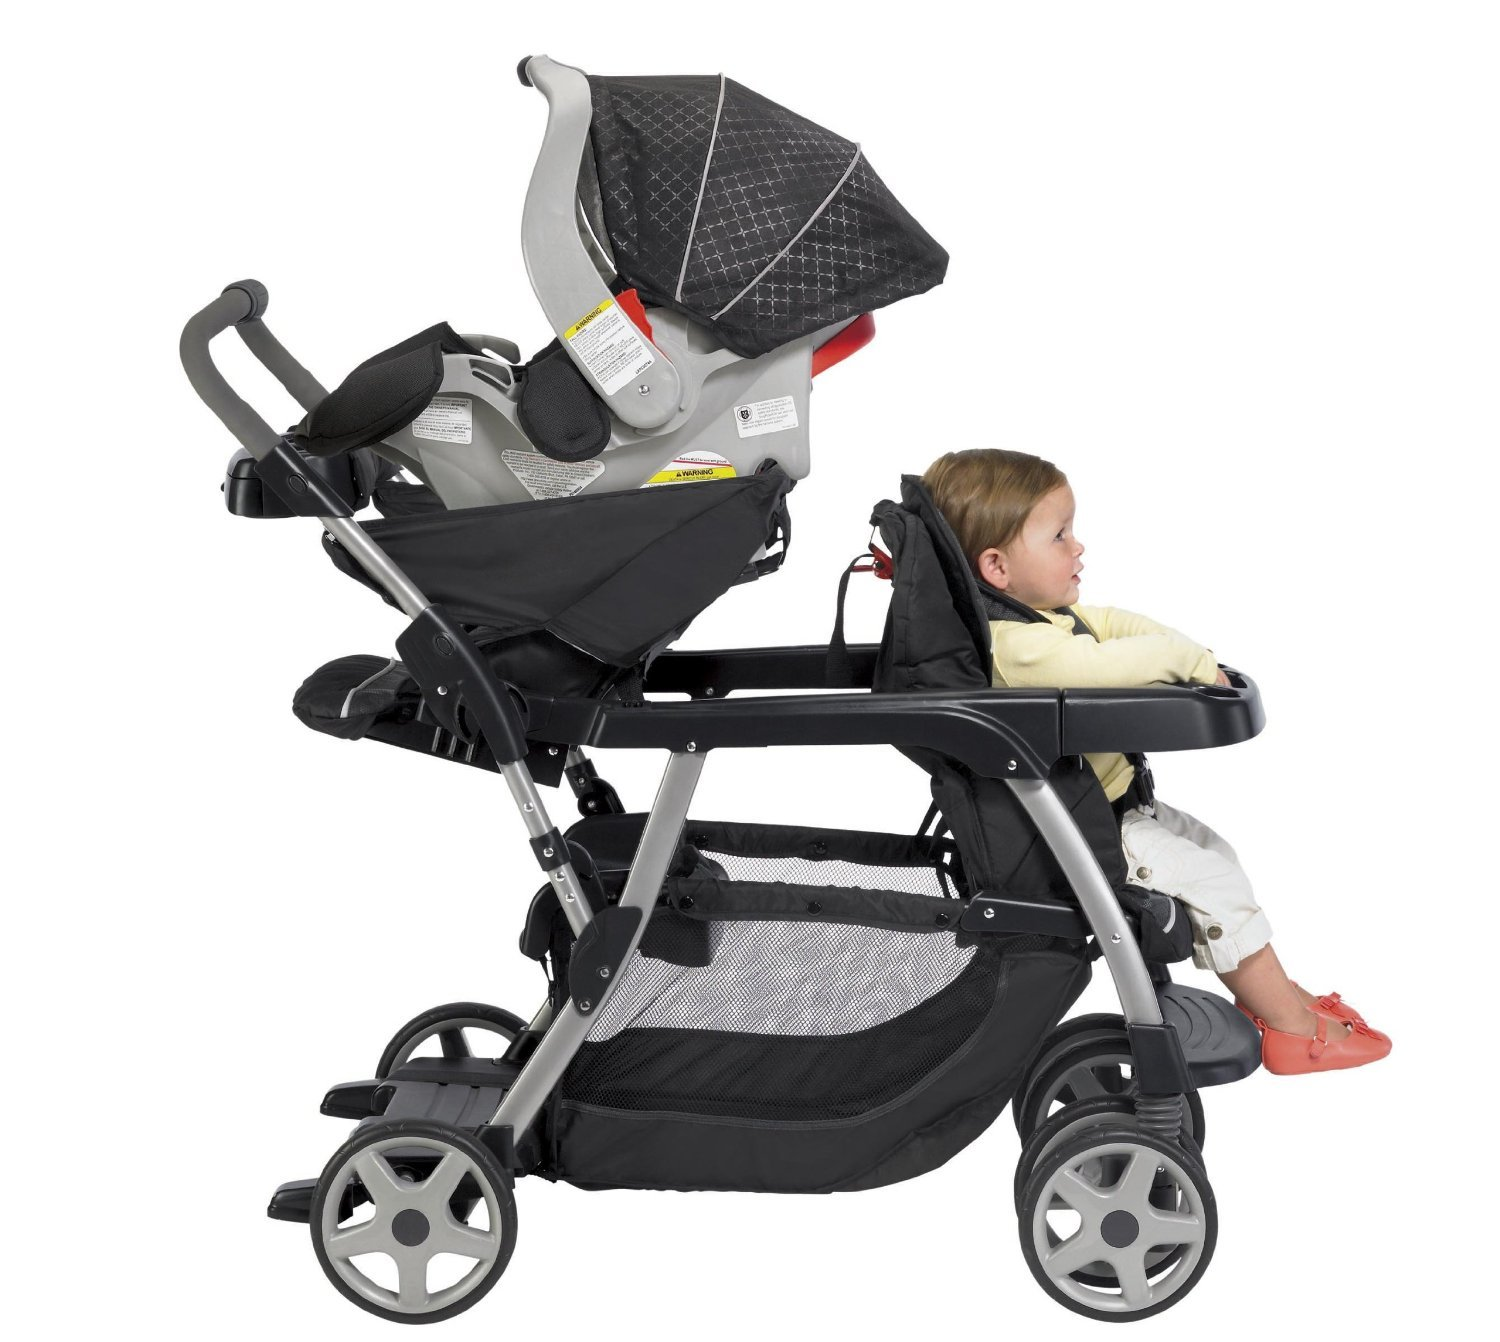 photo booth background ideas - Graco Double Stroller Twin Stroller with 2 Car Seats